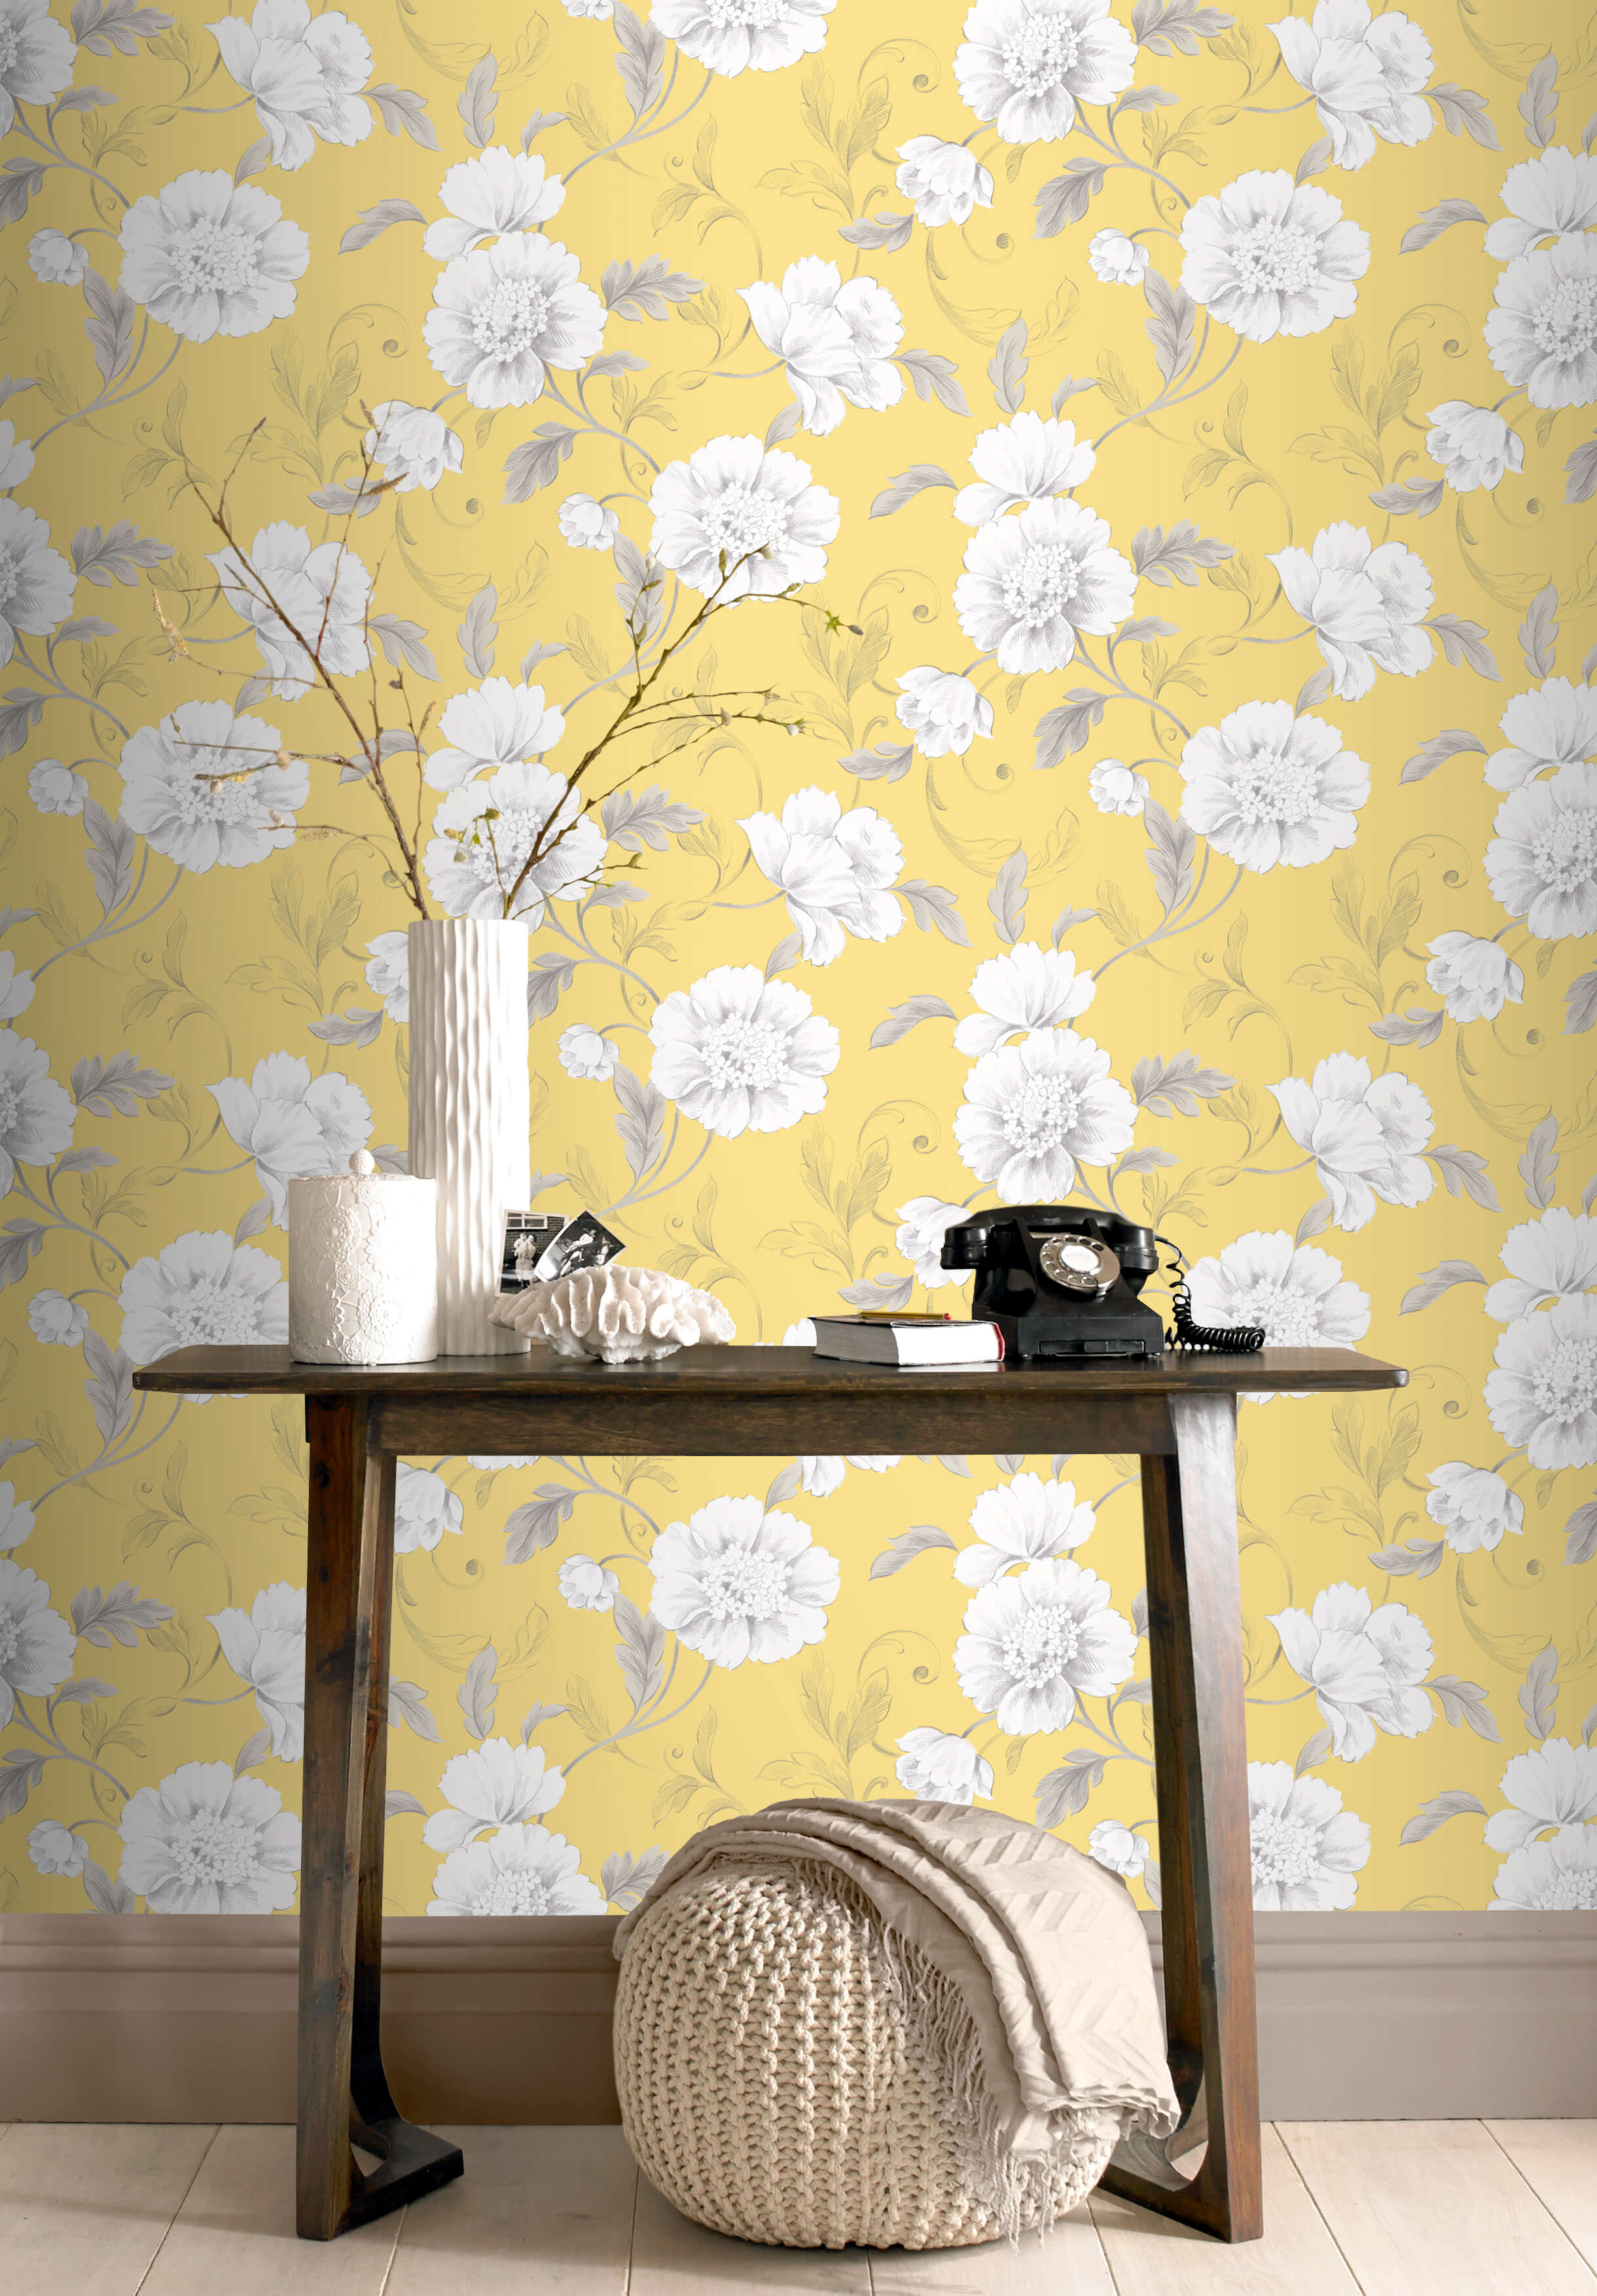 A hallway in a home with yellow floral wallpaper and a dark wood table